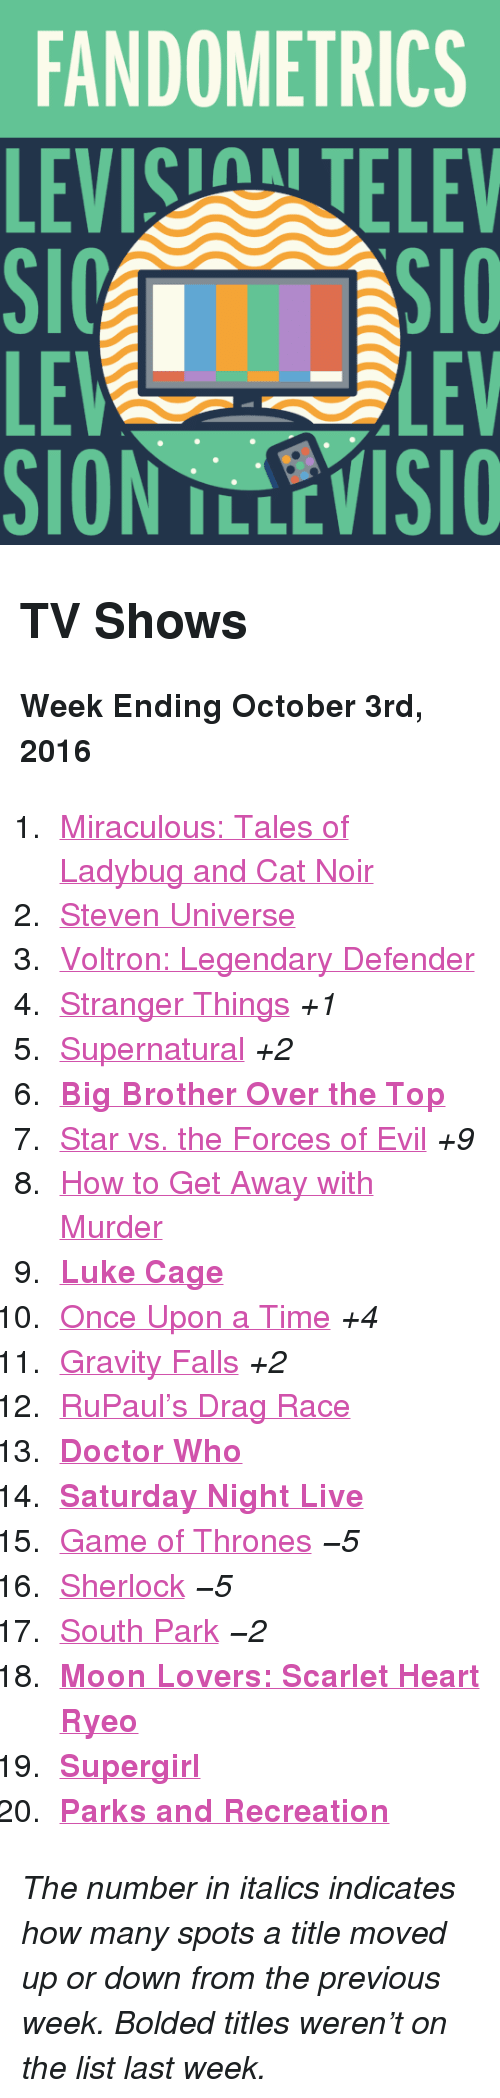 """Parks and Recreation: FANDOMETRICS  LEVIS TELEV  LE  SION TLLEVISIO  LEV <h2>TV Shows</h2><p><b>Week Ending October 3rd, 2016</b></p><ol><li><a href=""""http://www.tumblr.com/search/miraculous%20ladybug"""">Miraculous: Tales of Ladybug and Cat Noir</a></li>  <li><a href=""""http://www.tumblr.com/search/steven%20universe"""">Steven Universe</a></li>  <li><a href=""""http://www.tumblr.com/search/voltron"""">Voltron: Legendary Defender</a></li>  <li><a href=""""http://www.tumblr.com/search/stranger%20things"""">Stranger Things</a><i>+1</i></li>  <li><a href=""""http://www.tumblr.com/search/supernatural"""">Supernatural</a><i>+2</i></li>  <li><a href=""""http://www.tumblr.com/search/bbott""""><b>Big Brother Over the Top</b></a></li>  <li><a href=""""http://www.tumblr.com/search/star%20vs%20the%20forces%20of%20evil"""">Star vs. the Forces of Evil</a><i>+9</i></li>  <li><a href=""""http://www.tumblr.com/search/how%20to%20get%20away%20with%20murder"""">How to Get Away with Murder</a></li>  <li><a href=""""http://www.tumblr.com/search/luke%20cage""""><b>Luke Cage</b></a></li>  <li><a href=""""http://www.tumblr.com/search/ouat"""">Once Upon a Time</a><i>+4</i></li>  <li><a href=""""http://www.tumblr.com/search/gravity%20falls"""">Gravity Falls</a><i>+2</i></li>  <li><a href=""""http://www.tumblr.com/search/rupaul's%20drag%20race"""">RuPaul&rsquo;s Drag Race</a></li>  <li><a href=""""http://www.tumblr.com/search/doctor%20who""""><b>Doctor Who</b></a></li>  <li><a href=""""http://www.tumblr.com/search/snl""""><b>Saturday Night Live</b></a></li>  <li><a href=""""http://www.tumblr.com/search/game%20of%20thrones"""">Game of Thrones</a><i>−5</i></li>  <li><a href=""""http://www.tumblr.com/search/sherlock"""">Sherlock</a><i>−5</i></li>  <li><a href=""""http://www.tumblr.com/search/south%20park"""">South Park</a><i>−2</i></li>  <li><a href=""""http://www.tumblr.com/search/moon%20lovers""""><b>Moon Lovers: Scarlet Heart Ryeo</b></a></li>  <li><a href=""""http://www.tumblr.com/search/supergirl""""><b>Supergirl</b></a></li>  <li><a href=""""http://www.tumblr.com/search/parks%20and%20recreation""""><b>Pa"""